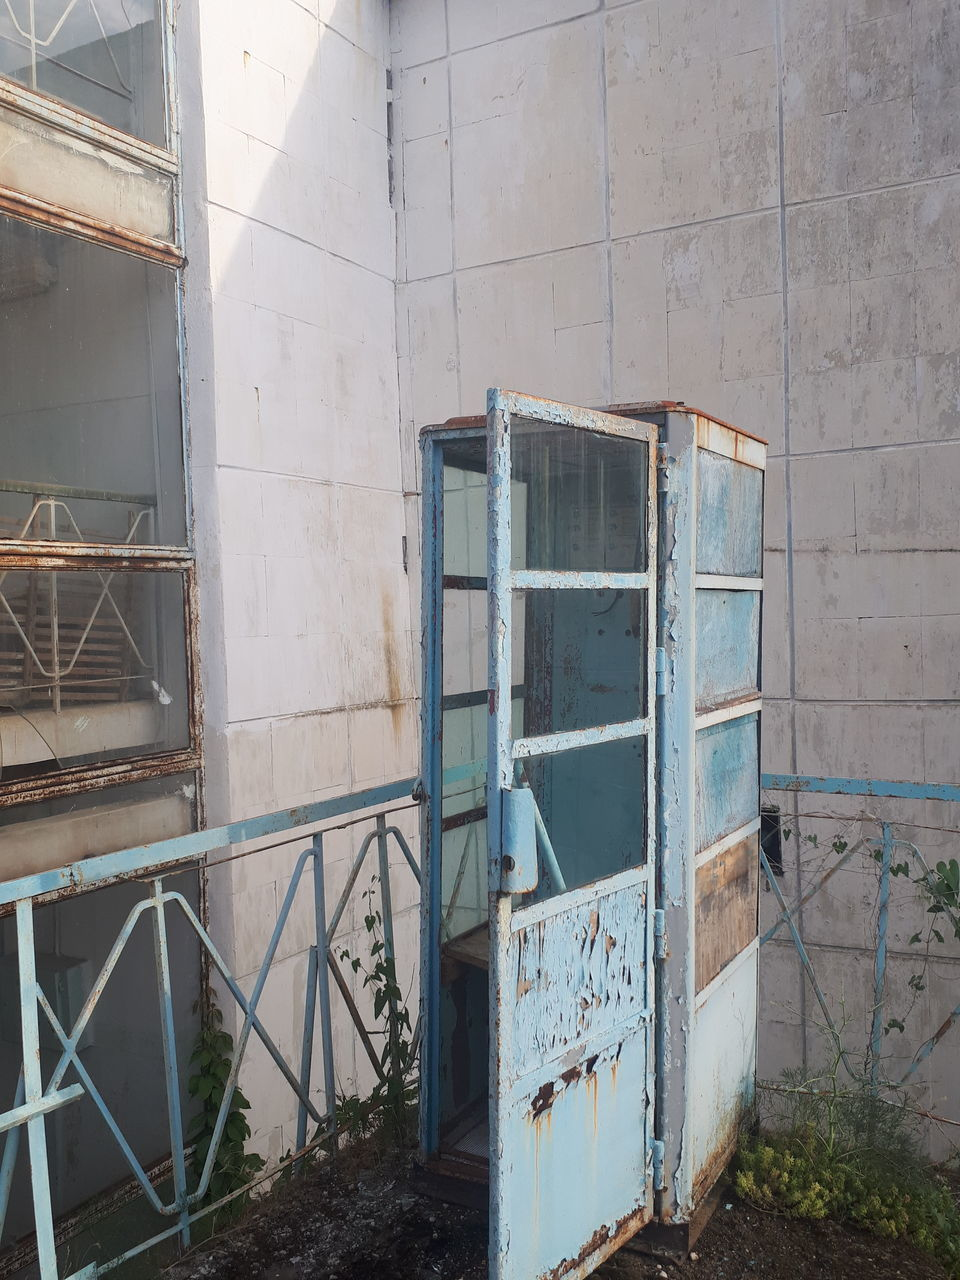 architecture, built structure, abandoned, building, entrance, damaged, no people, obsolete, door, building exterior, old, day, wall - building feature, run-down, decline, deterioration, outdoors, bad condition, domestic room, weathered, ruined